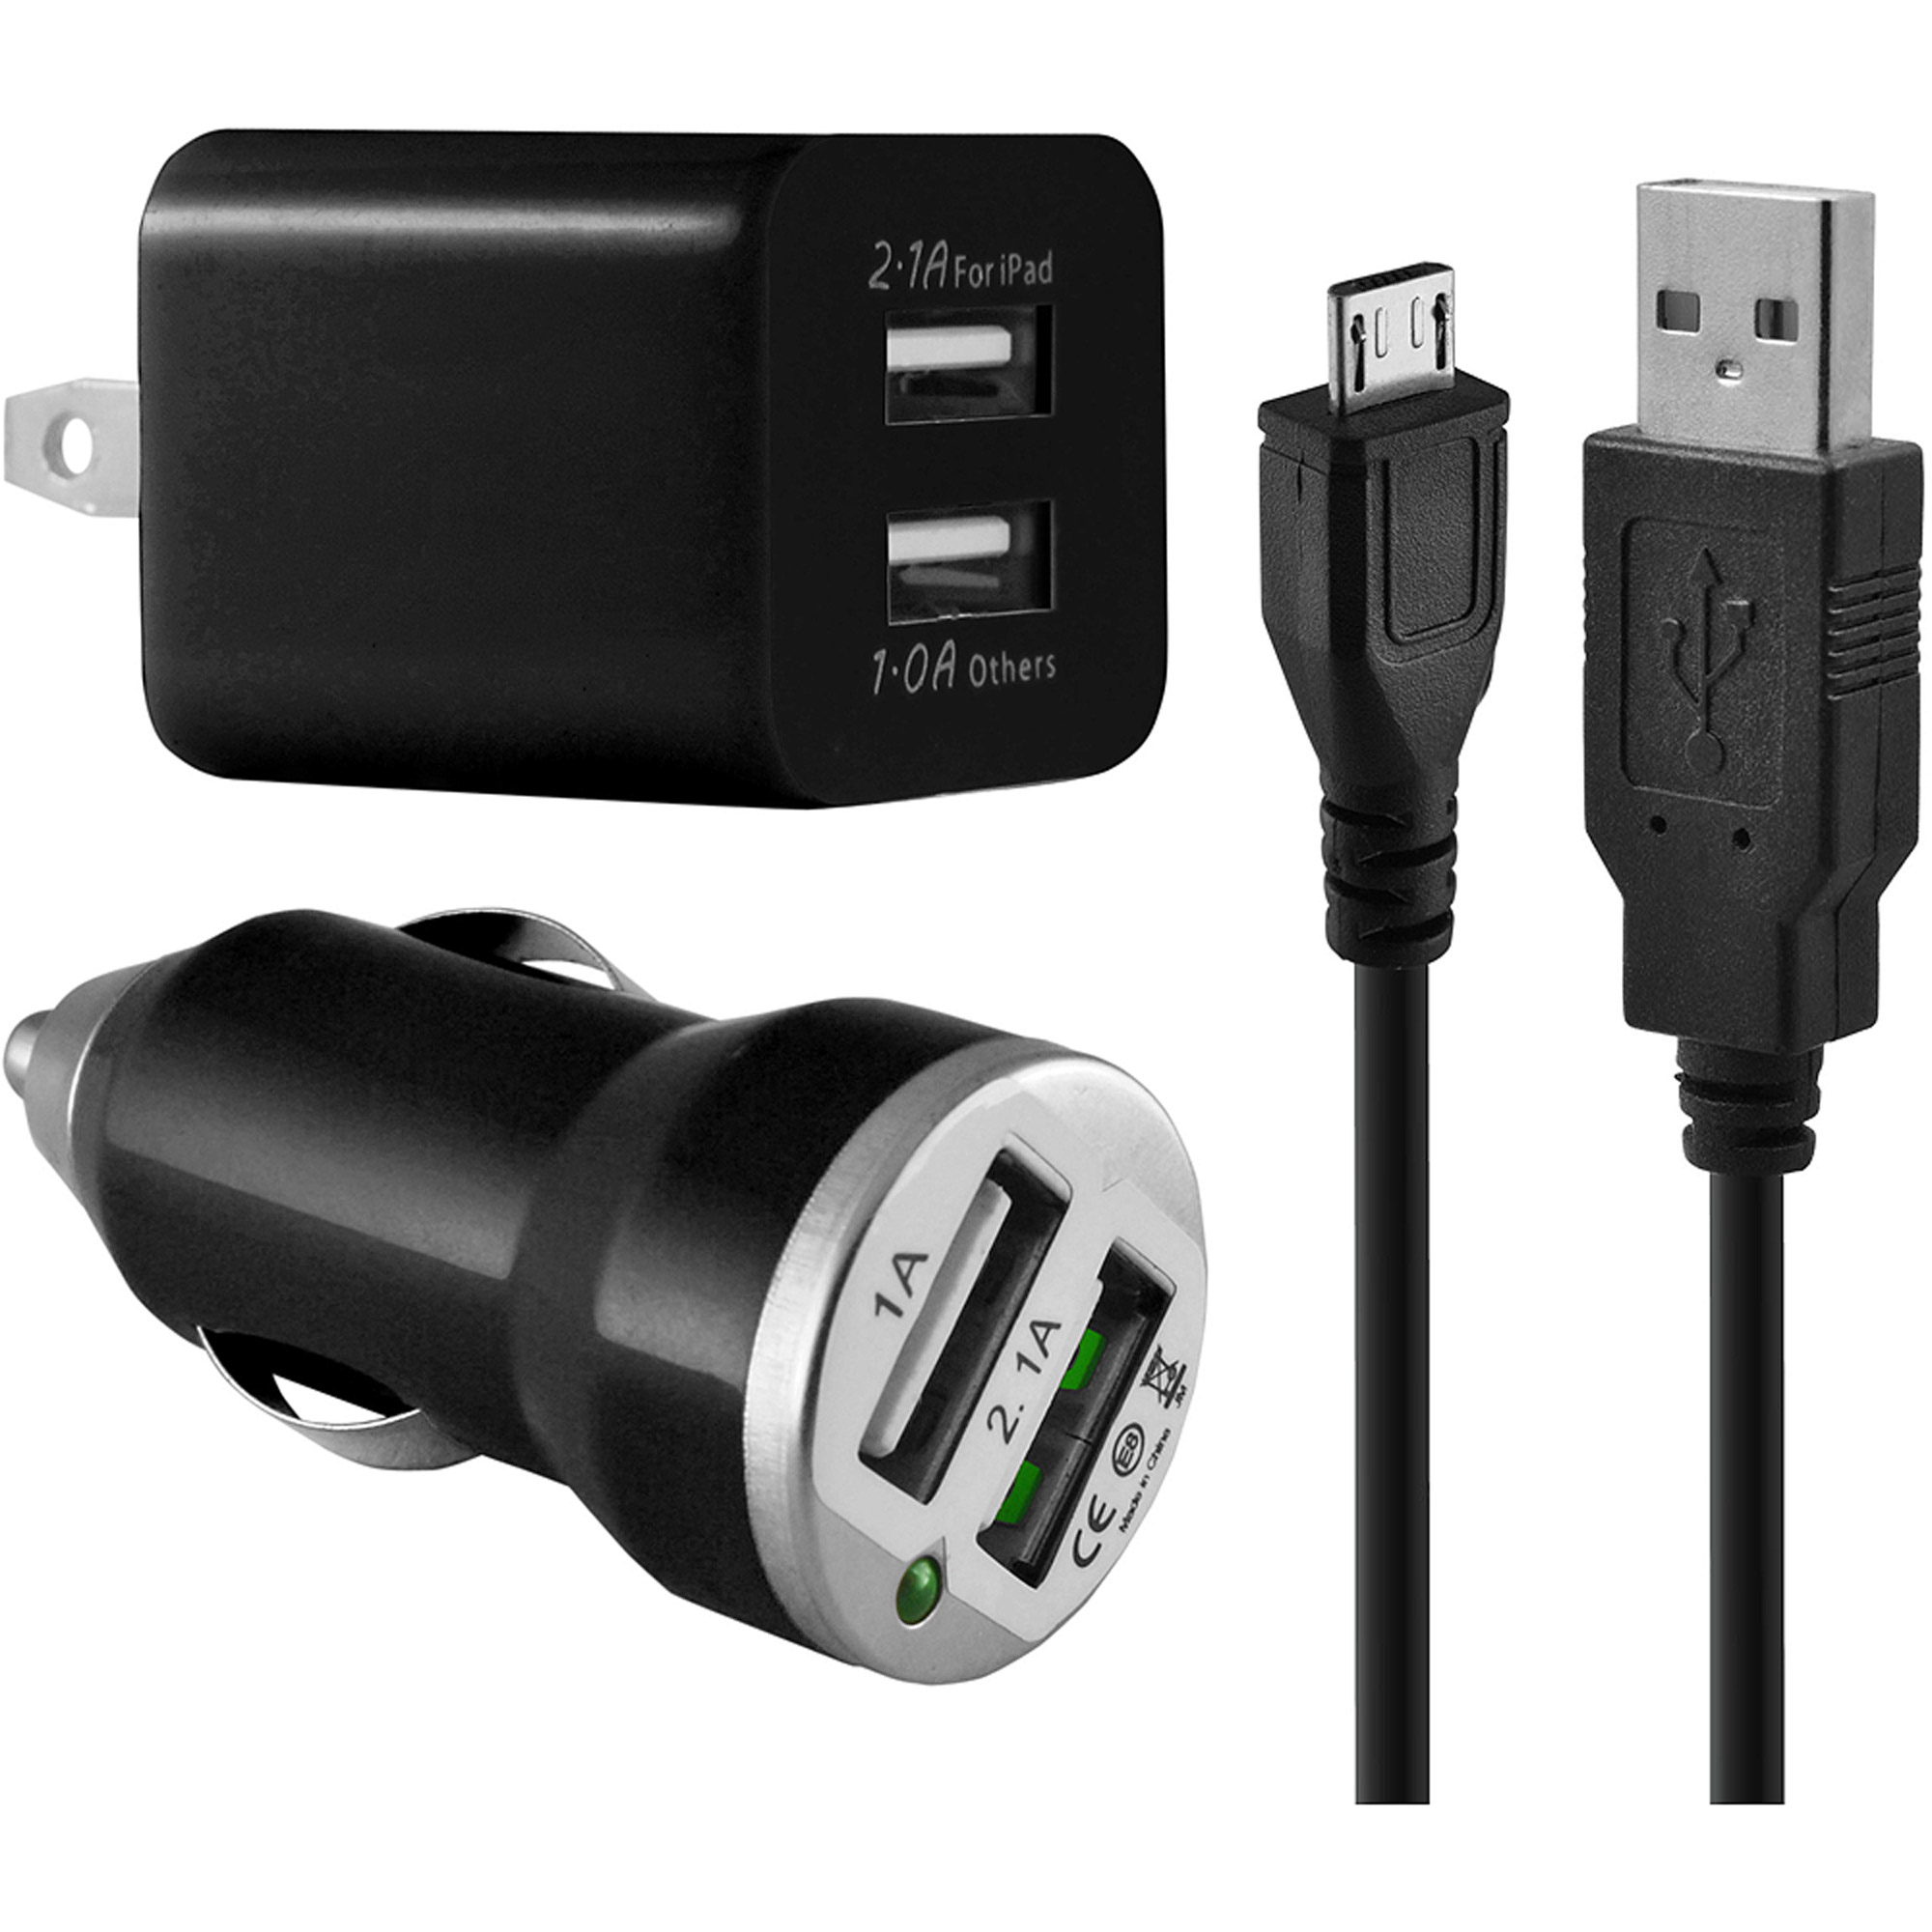 DP Audio Dual USB Wall Charger with USB Car Charger and microUSB Cable